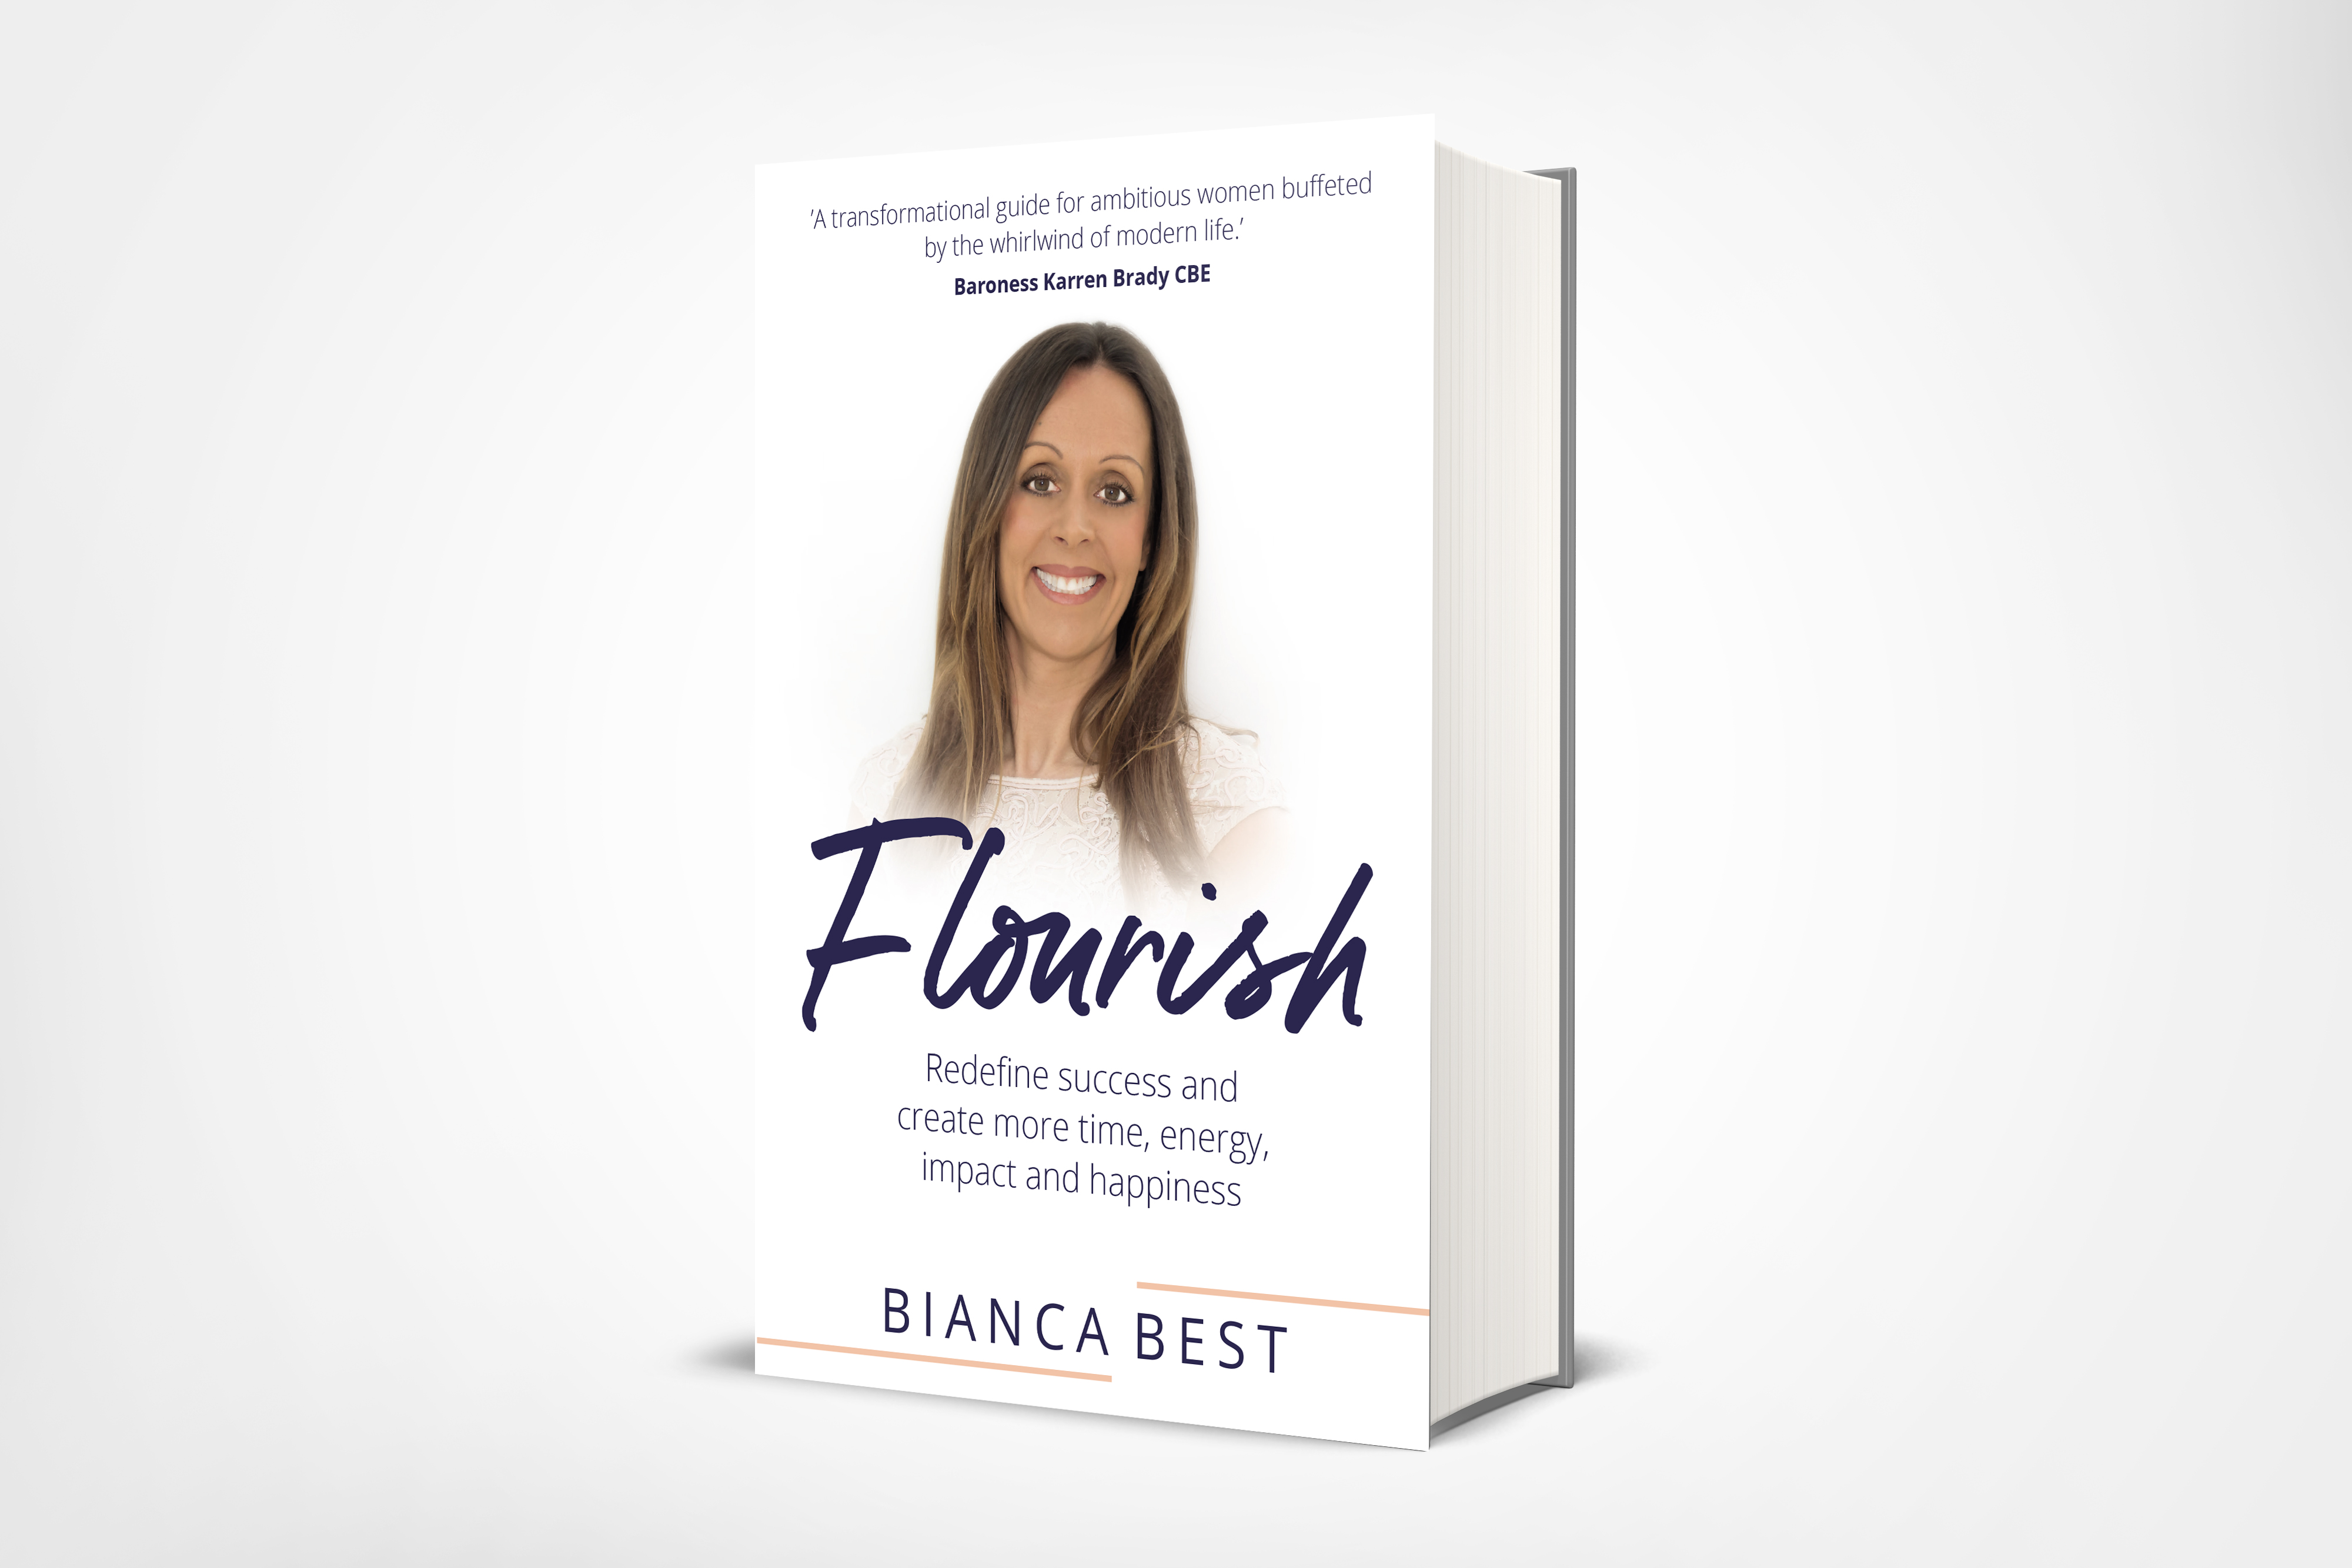 Flourish by Bianca Best